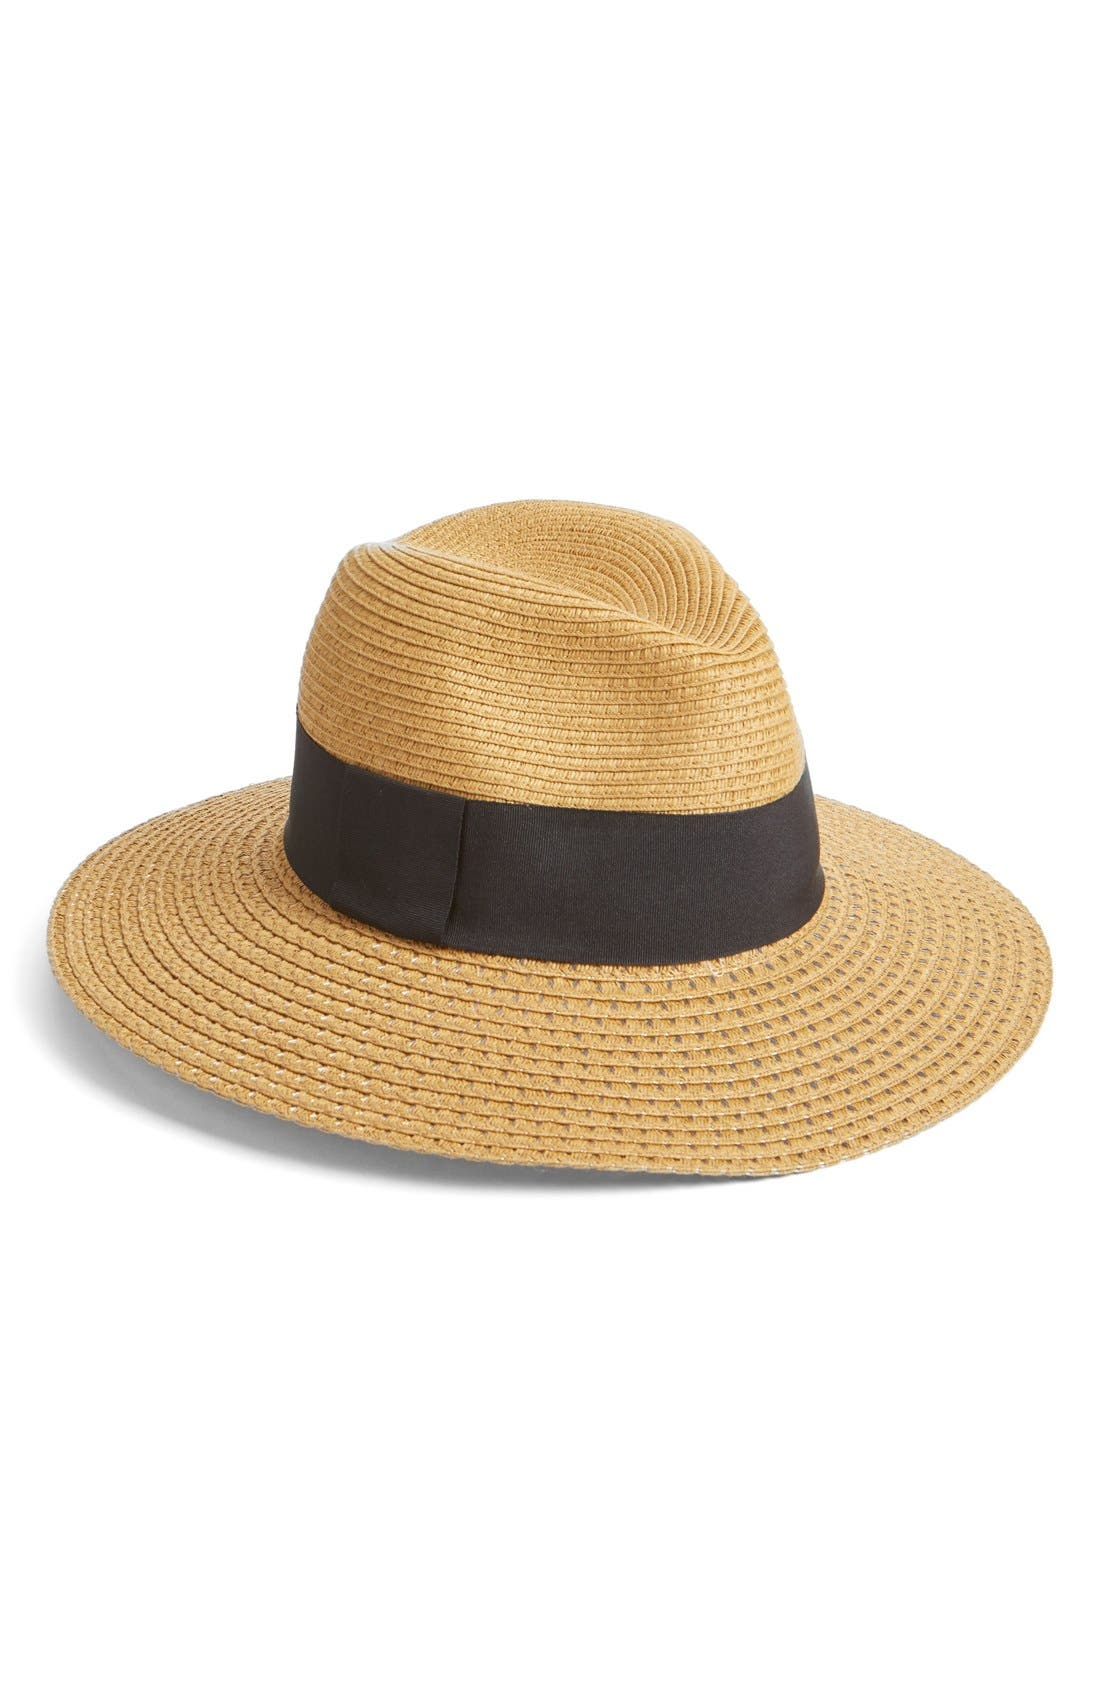 Alternate Image 1 Selected - Nordstrom Wide Brim Straw Panama Hat